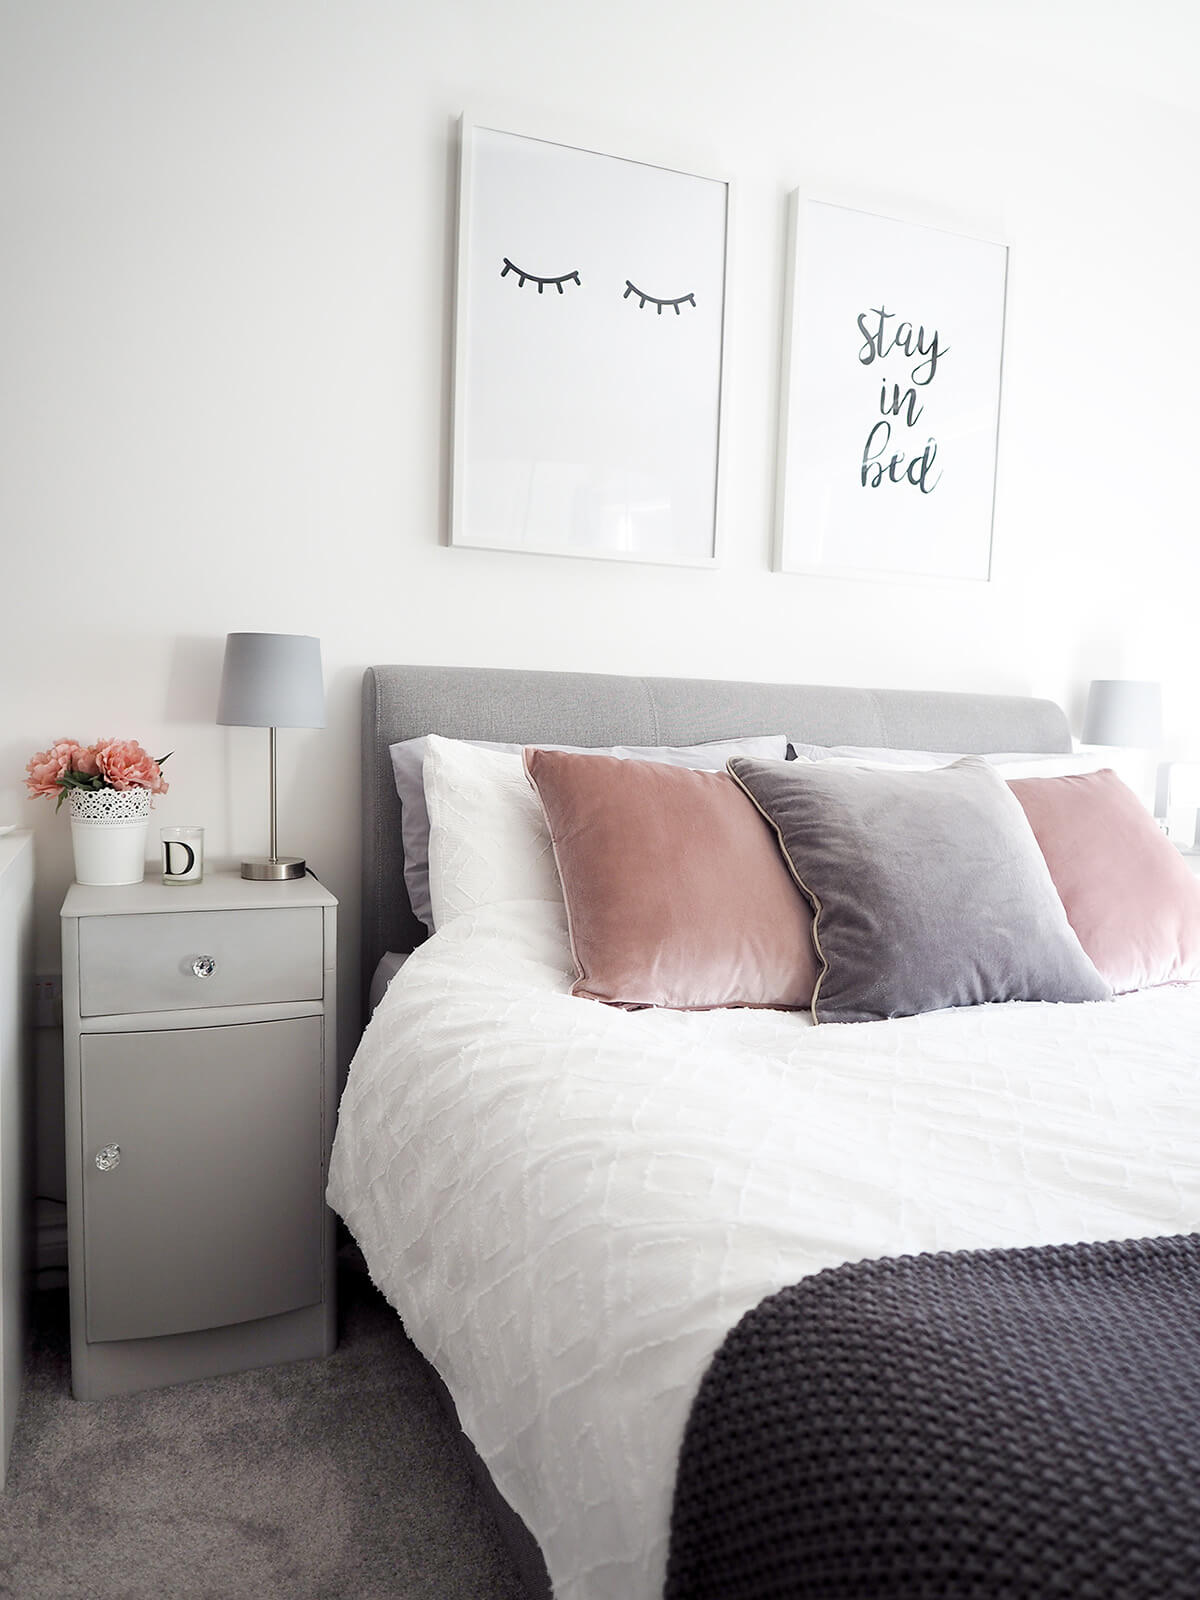 14 Best Trendy Bedroom Decor and Design Ideas for 2020 on Trendy Teenage Room Decor  id=44396